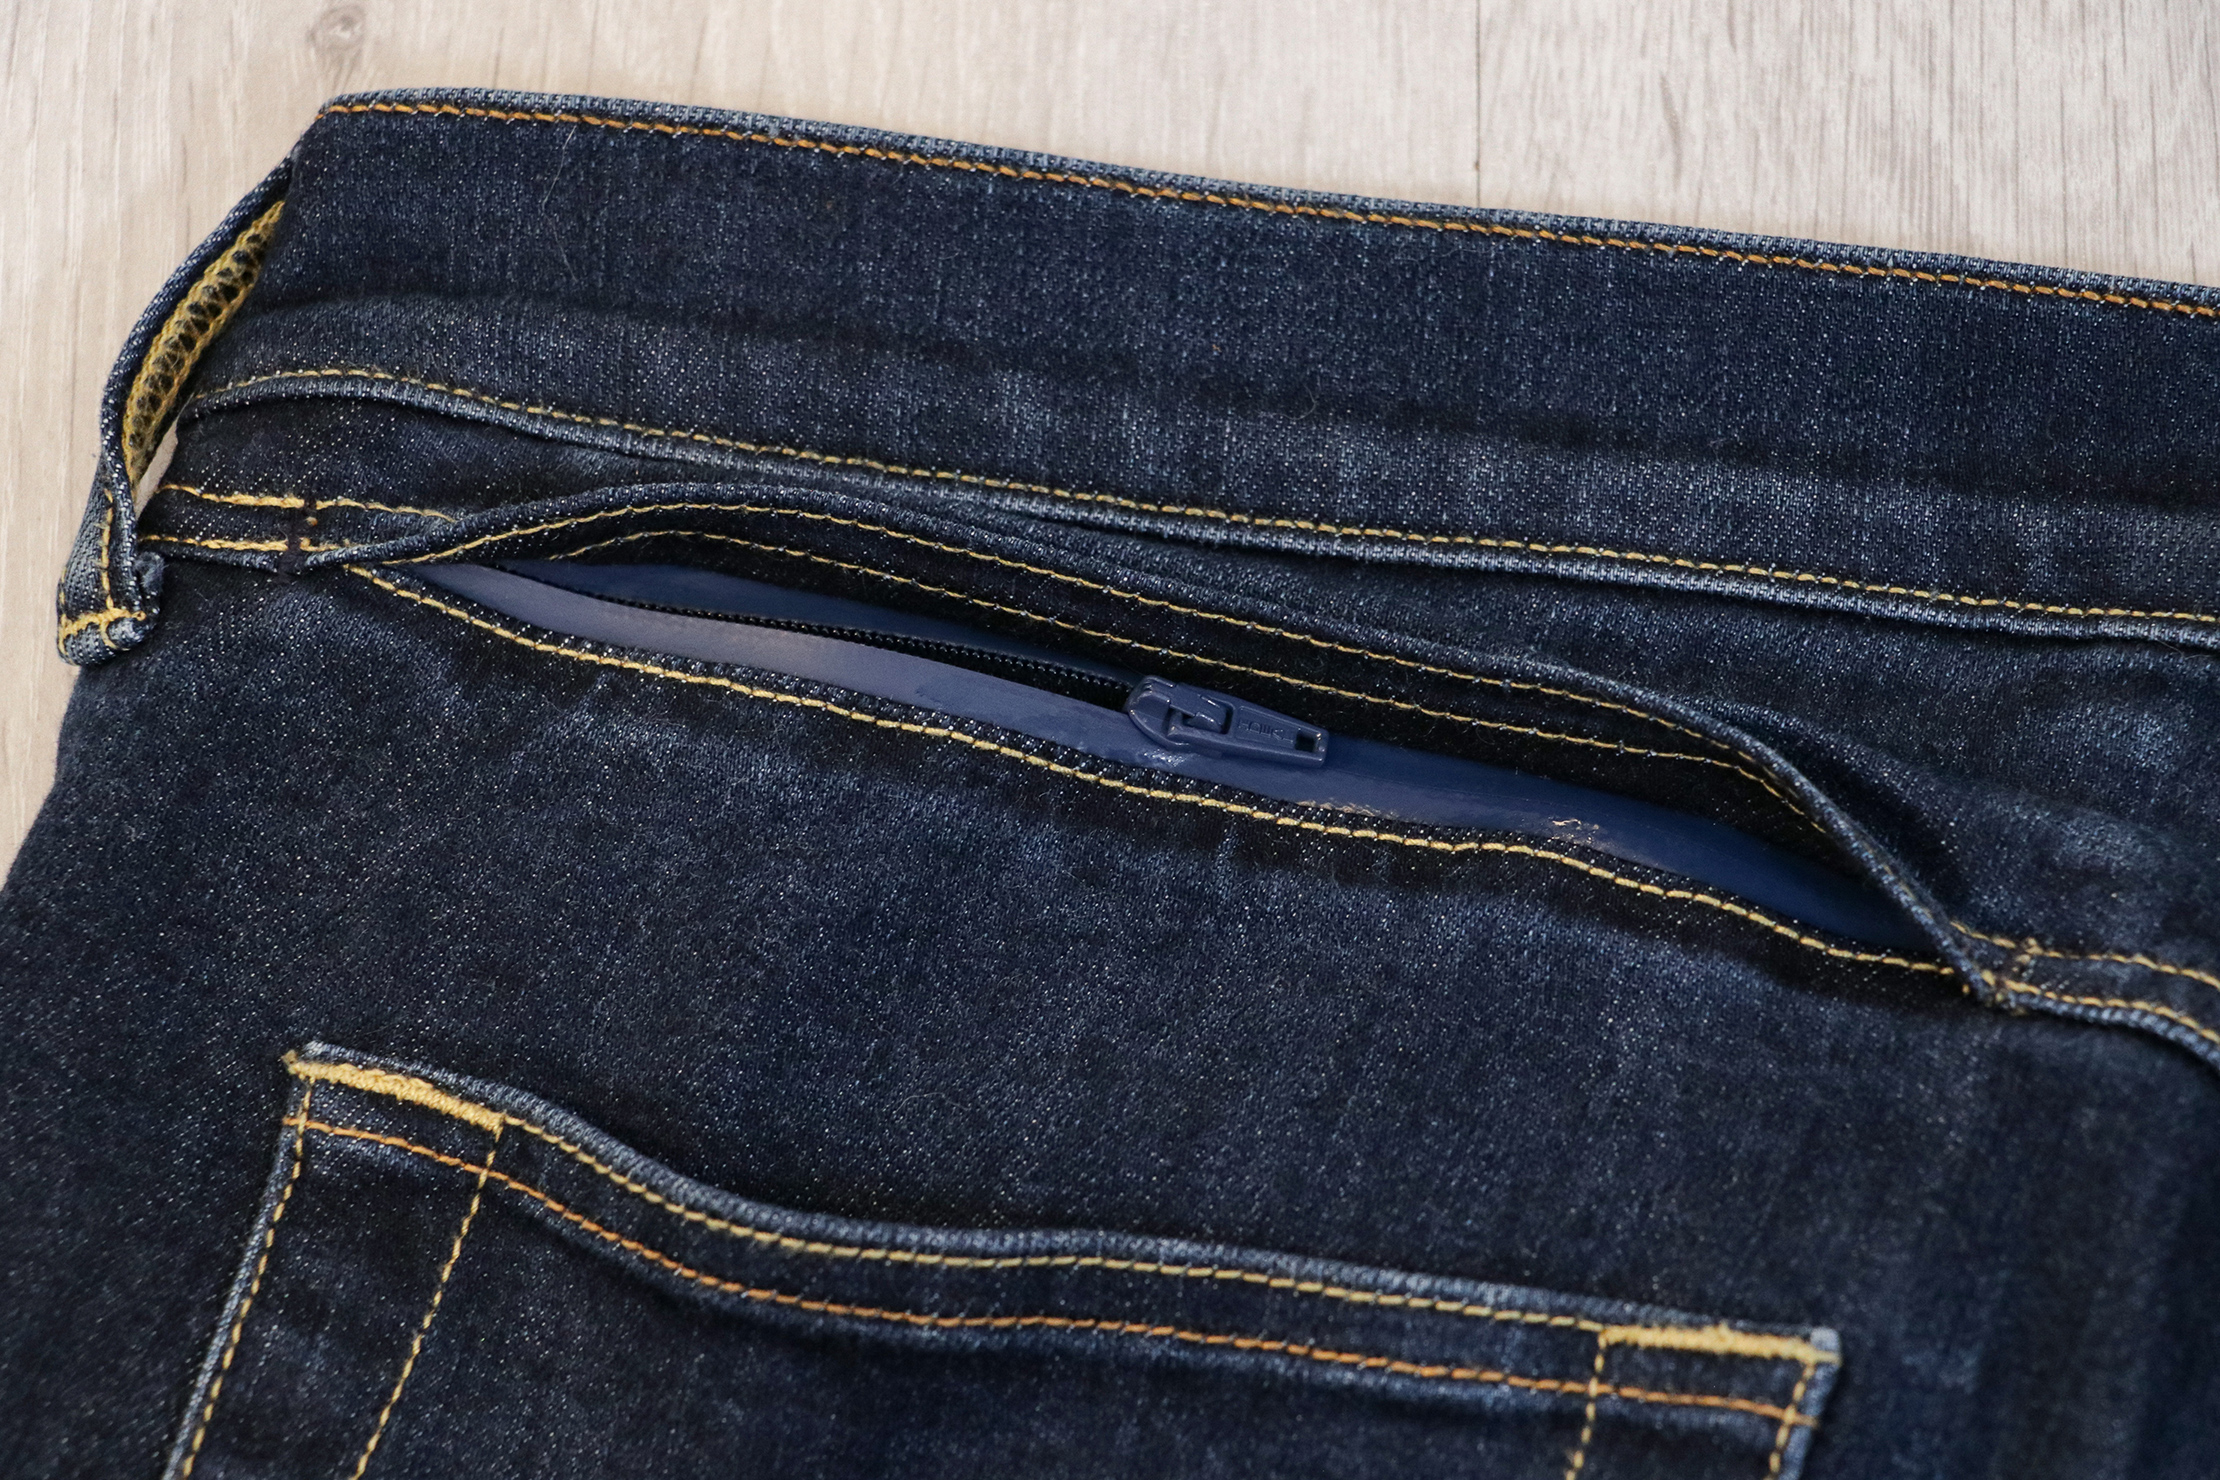 Bluffworks Departure Travel Jeans Secret Pocket